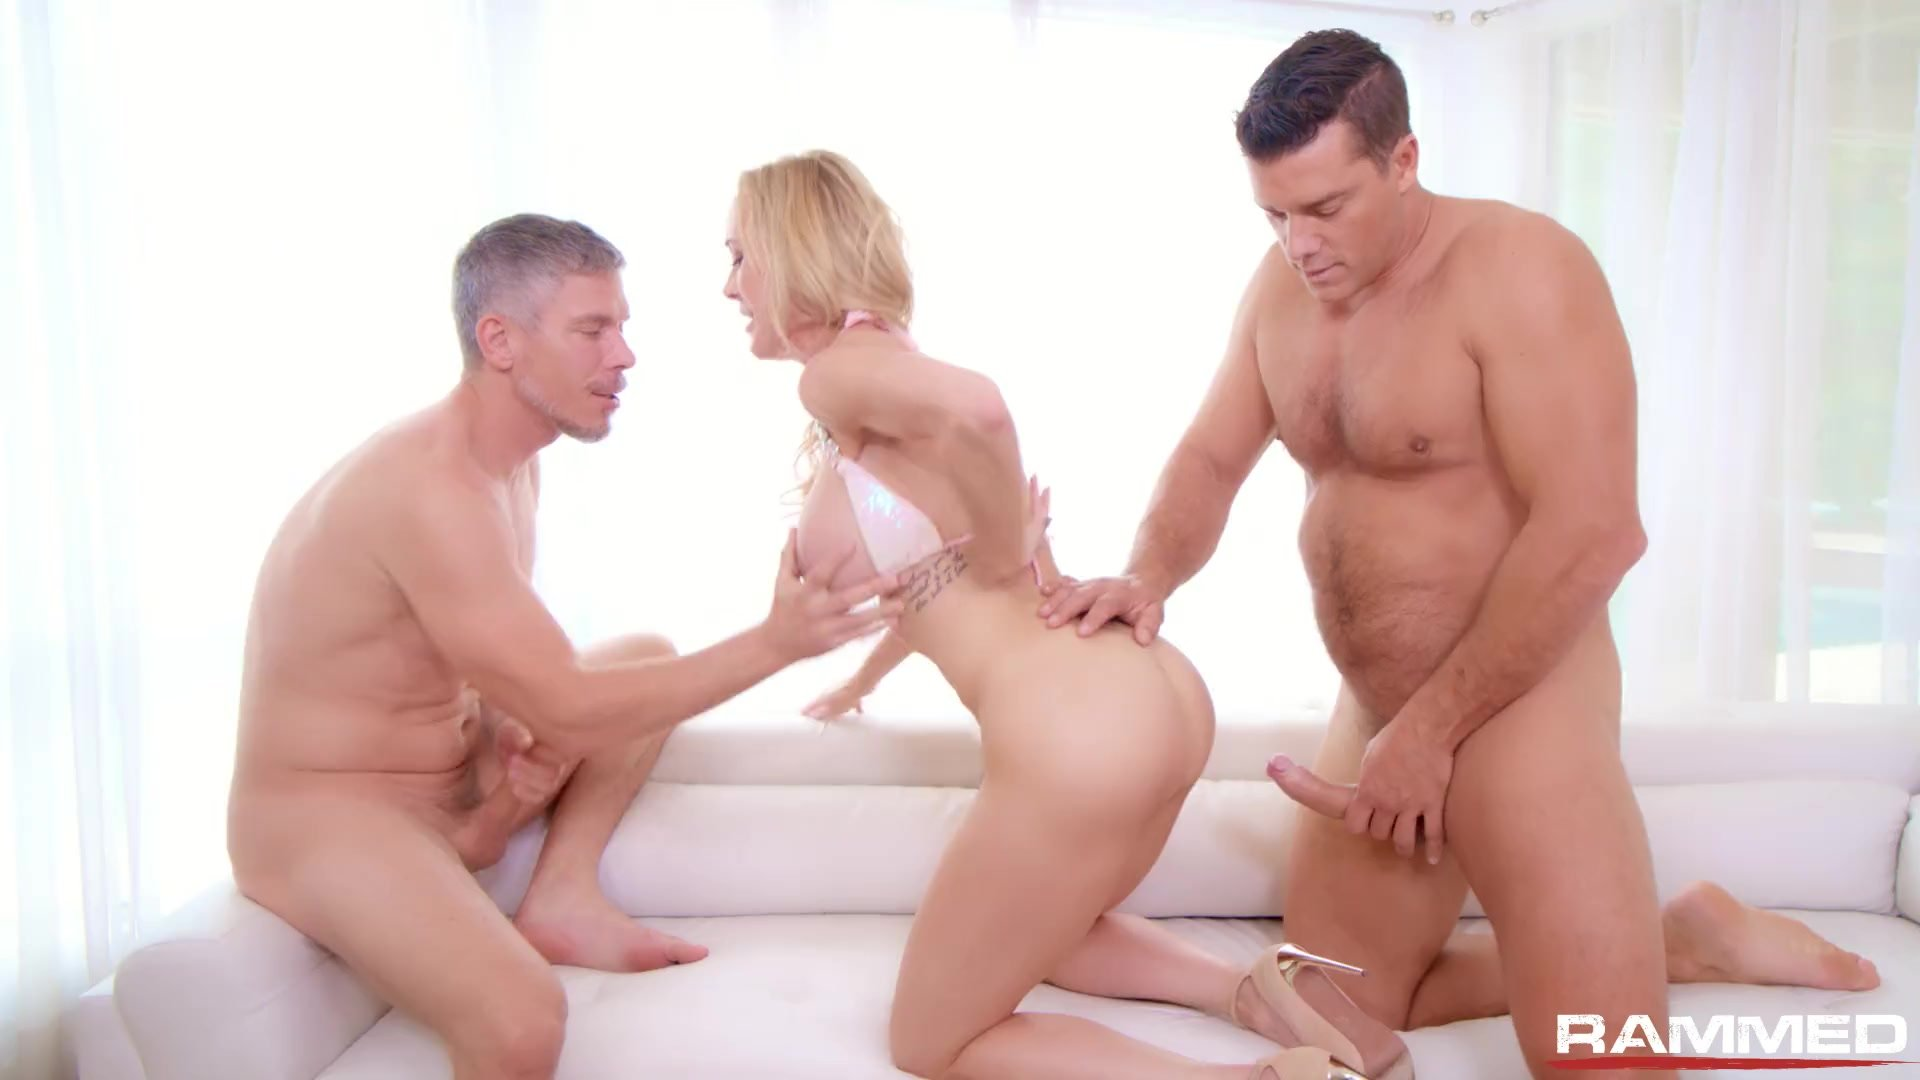 Rammed - Brandi Love gets her MILF pussy used by two cocks